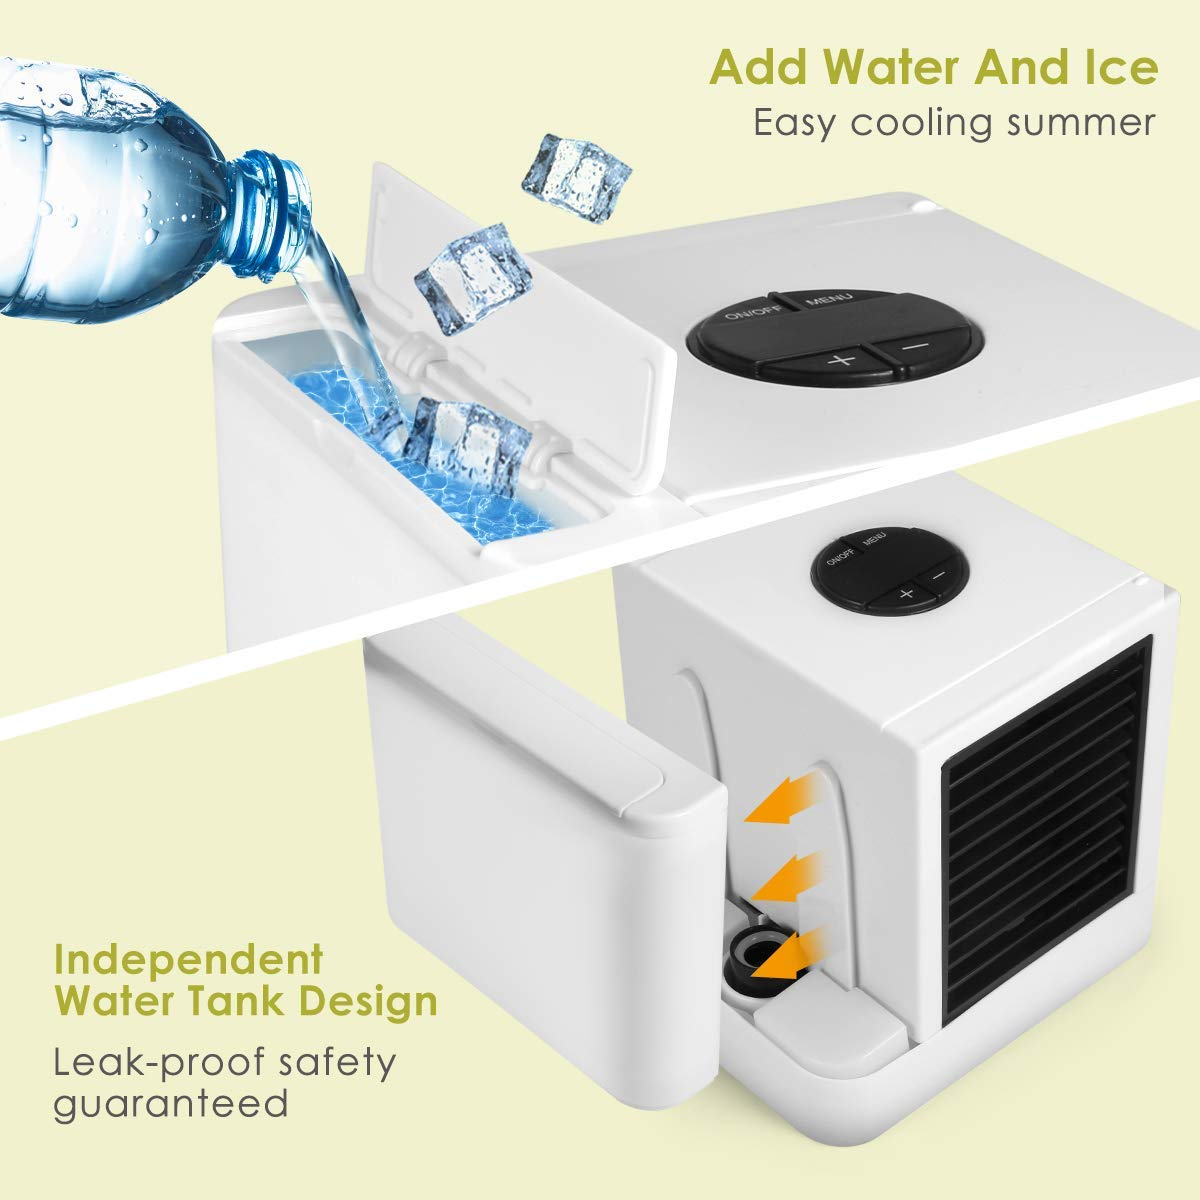 with 3 Speeds and 7 Colors LED Night Light Desktop Cooling Fan for Household Office and Outdoors Purifier Humidifier 3 in 1 Mini USB Air Conditioner Personal Space Air Cooler